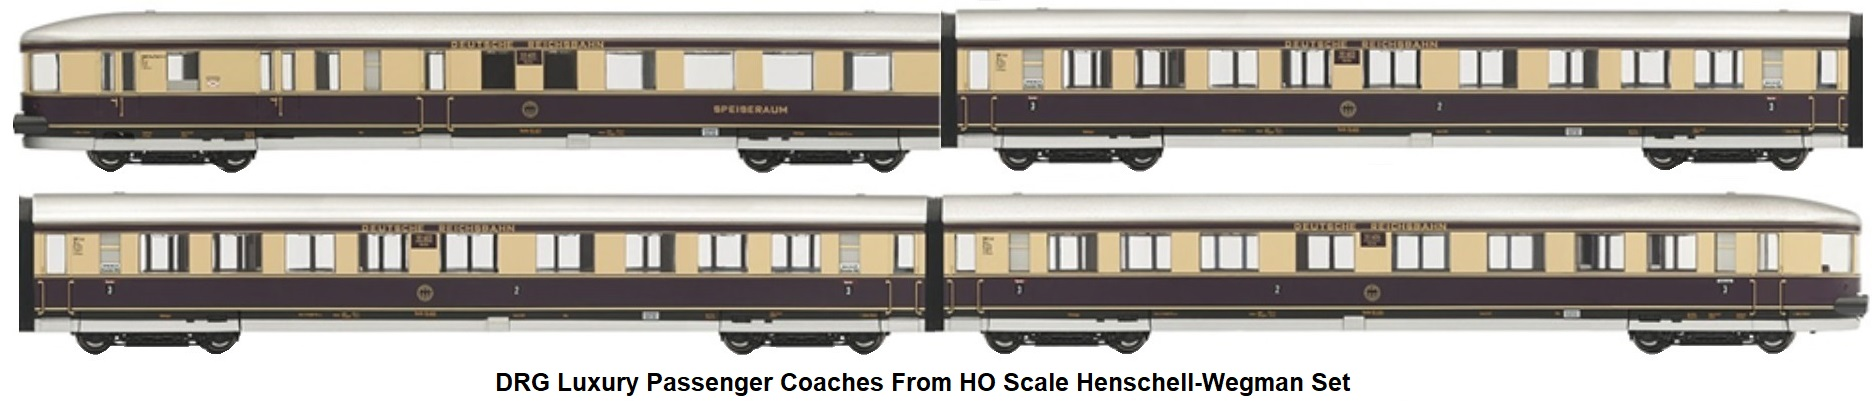 Rivarossi HO gauge Henschell-Wegmann 4-6-4T Streamlined Passenger train set